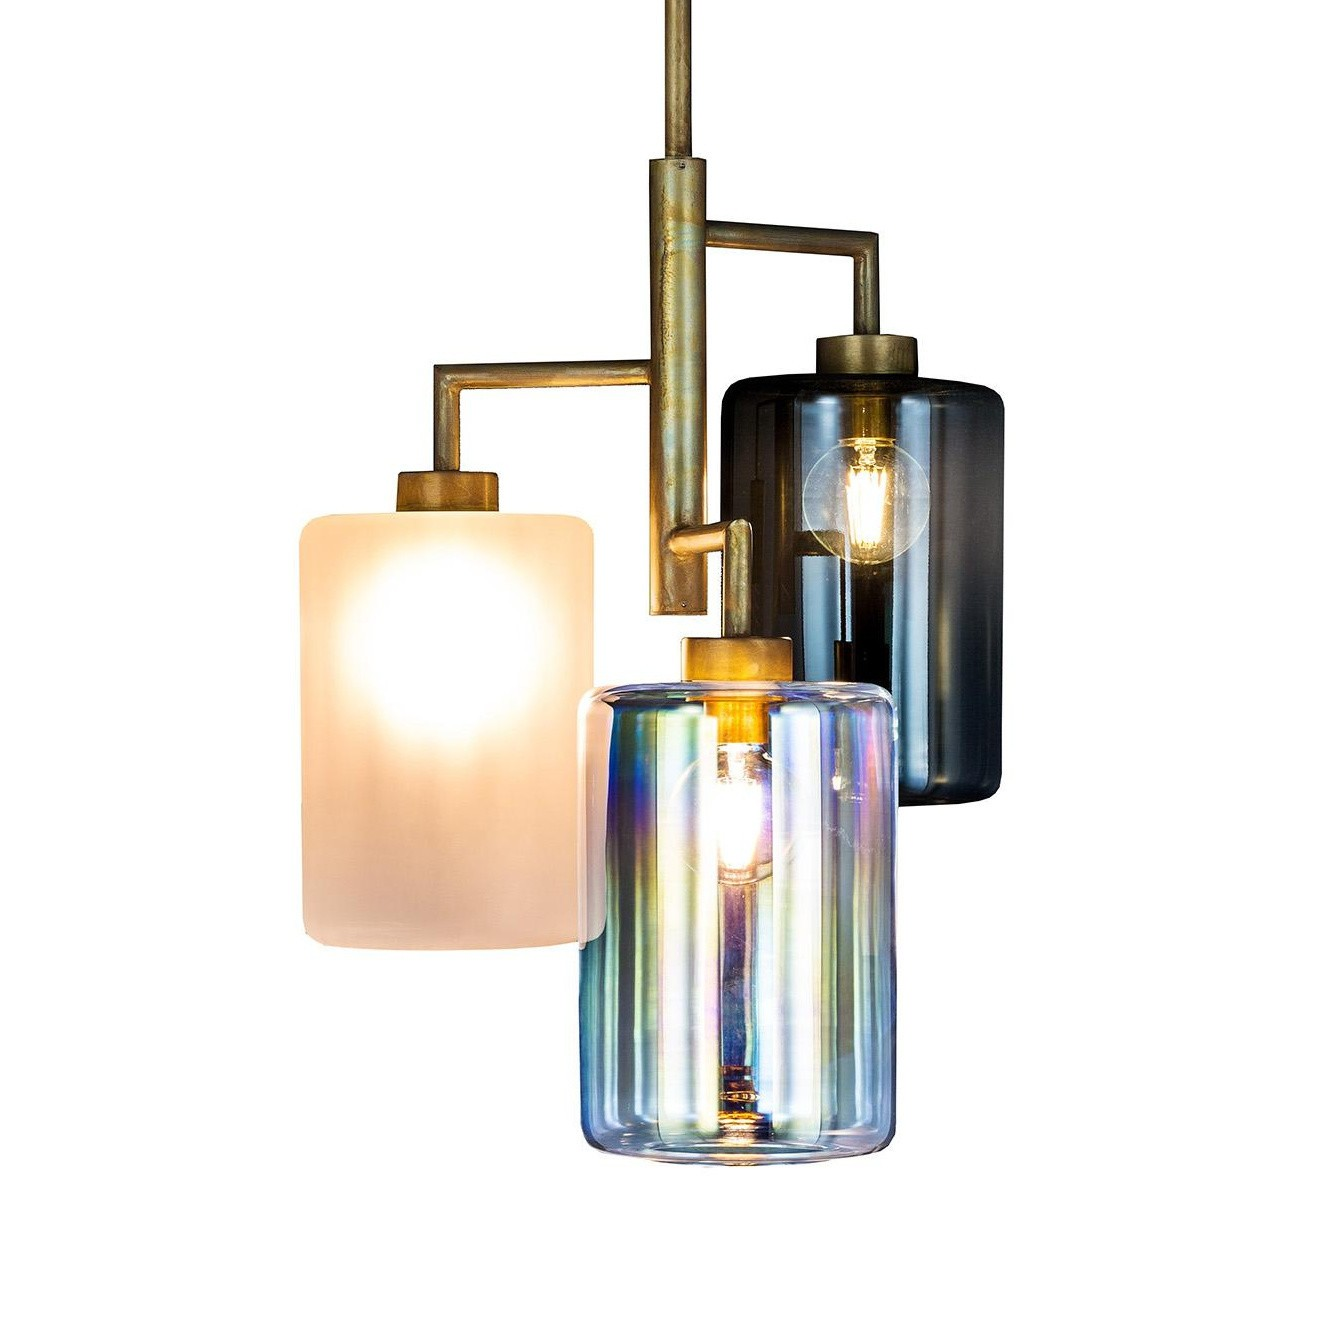 Obegi Home Lighting Brand Van Egmond Louise 3